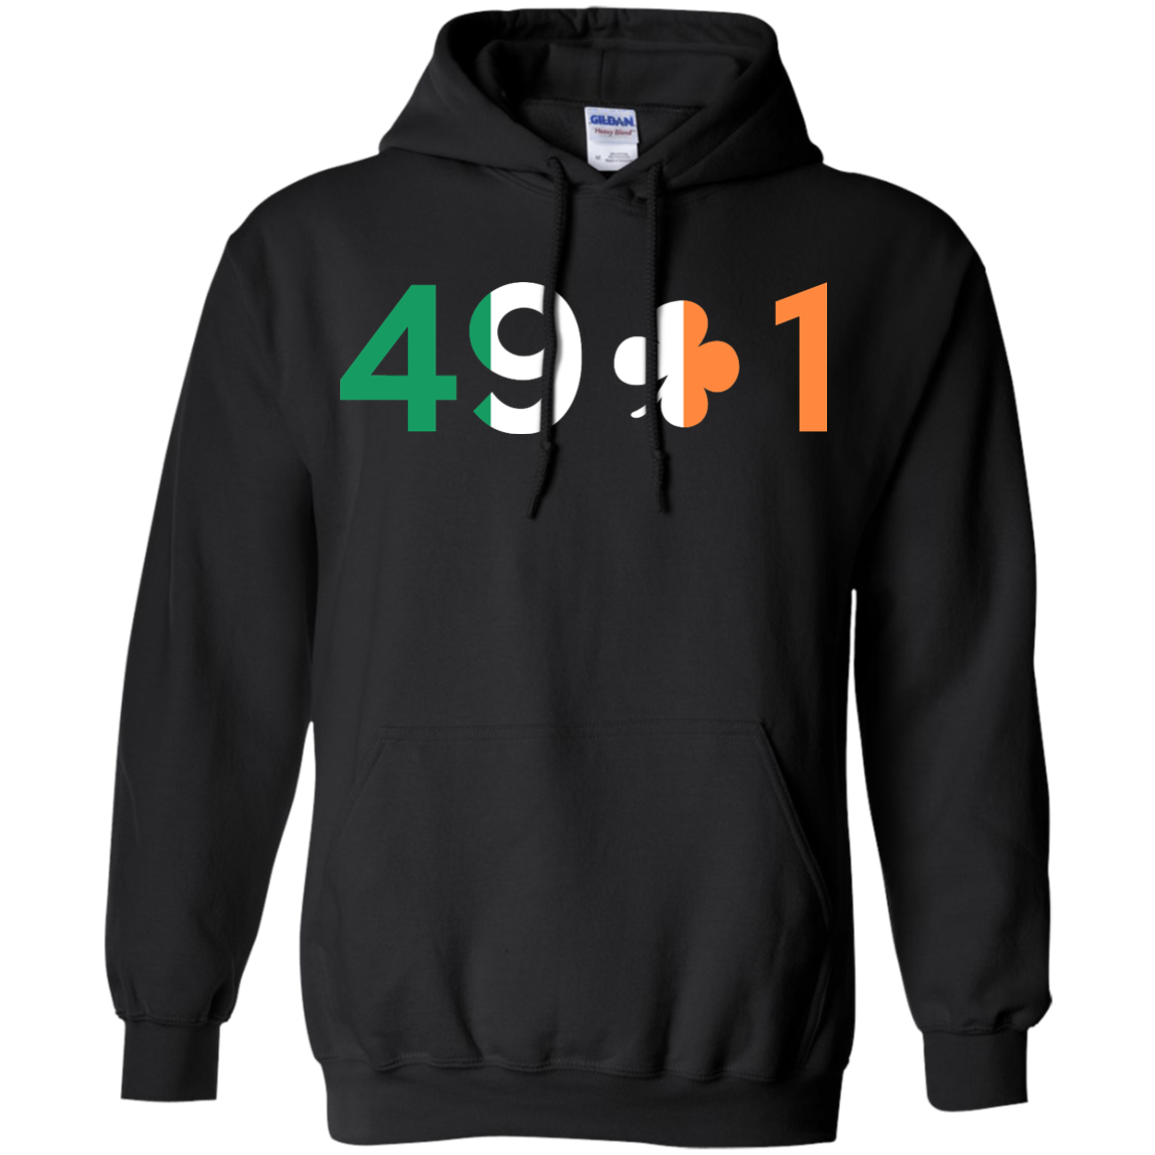 image 400px Conor Mcgregor 49 + 1 Irish T Shirts, Hoodies, Long Sleeves